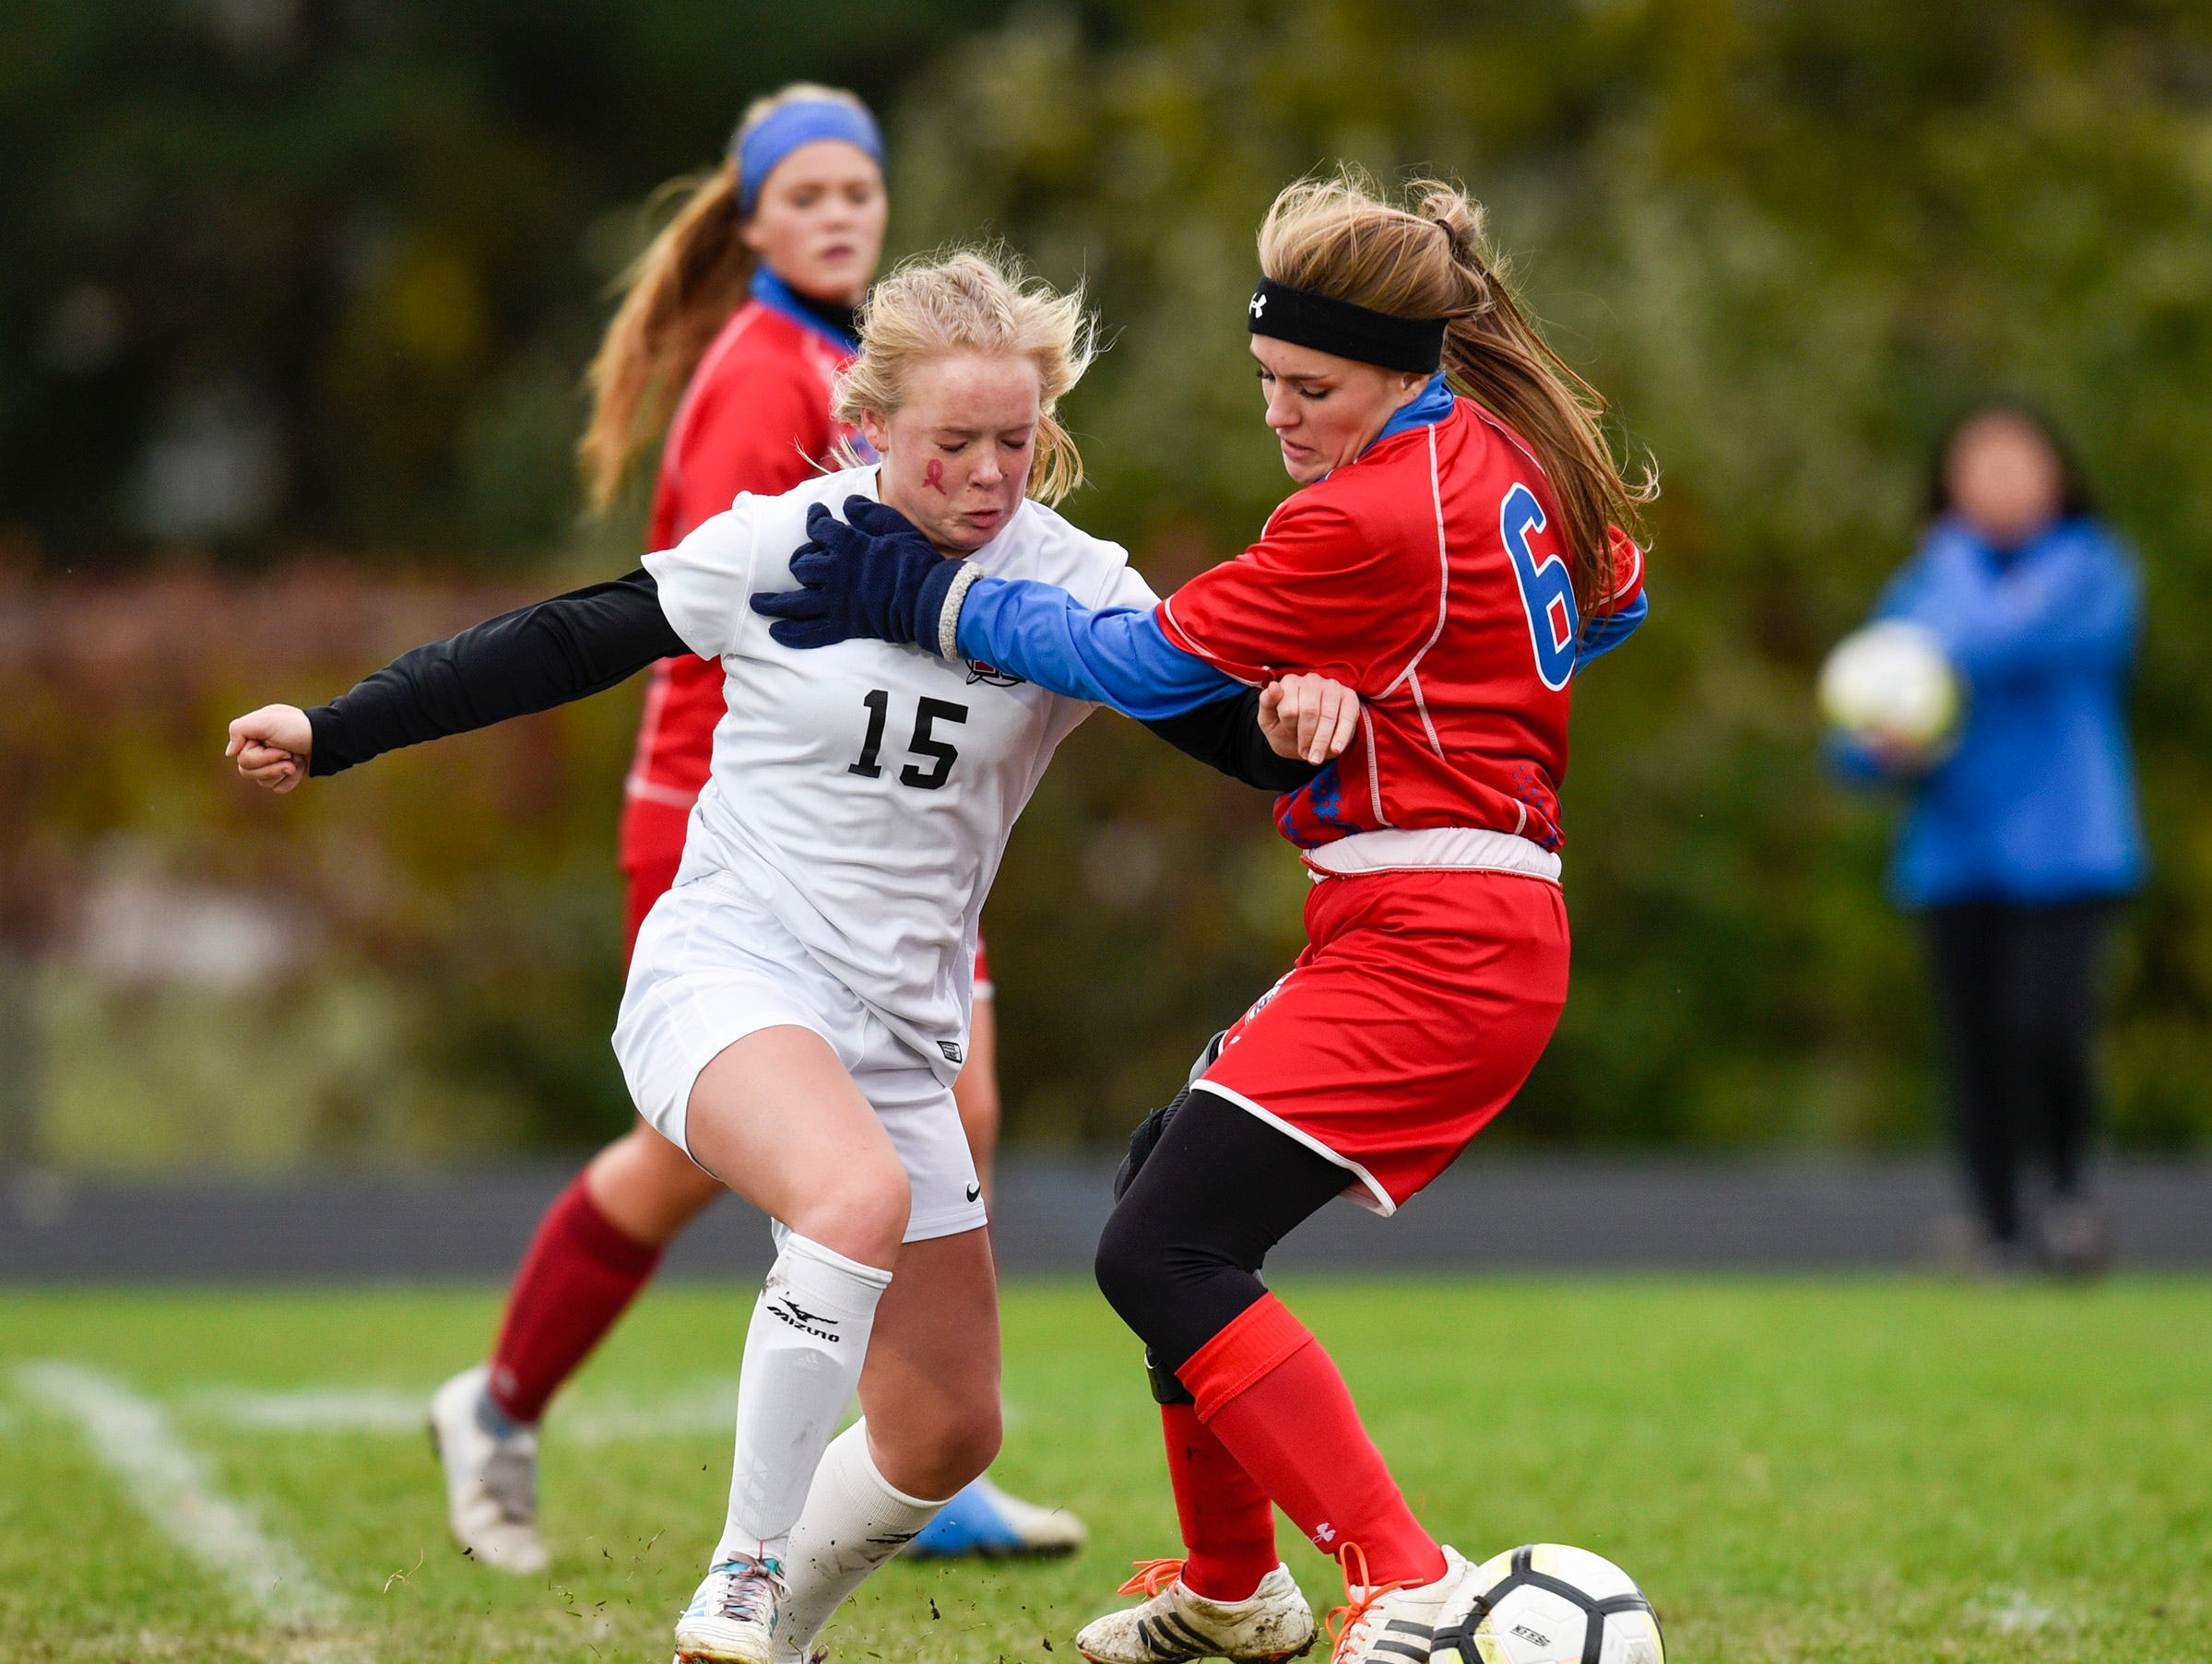 ROCORI's Delaney Griffin tries to take the ball past Apollo's Skyler Urick during the first half Thursday, Oct. 11, at Apollo High School.